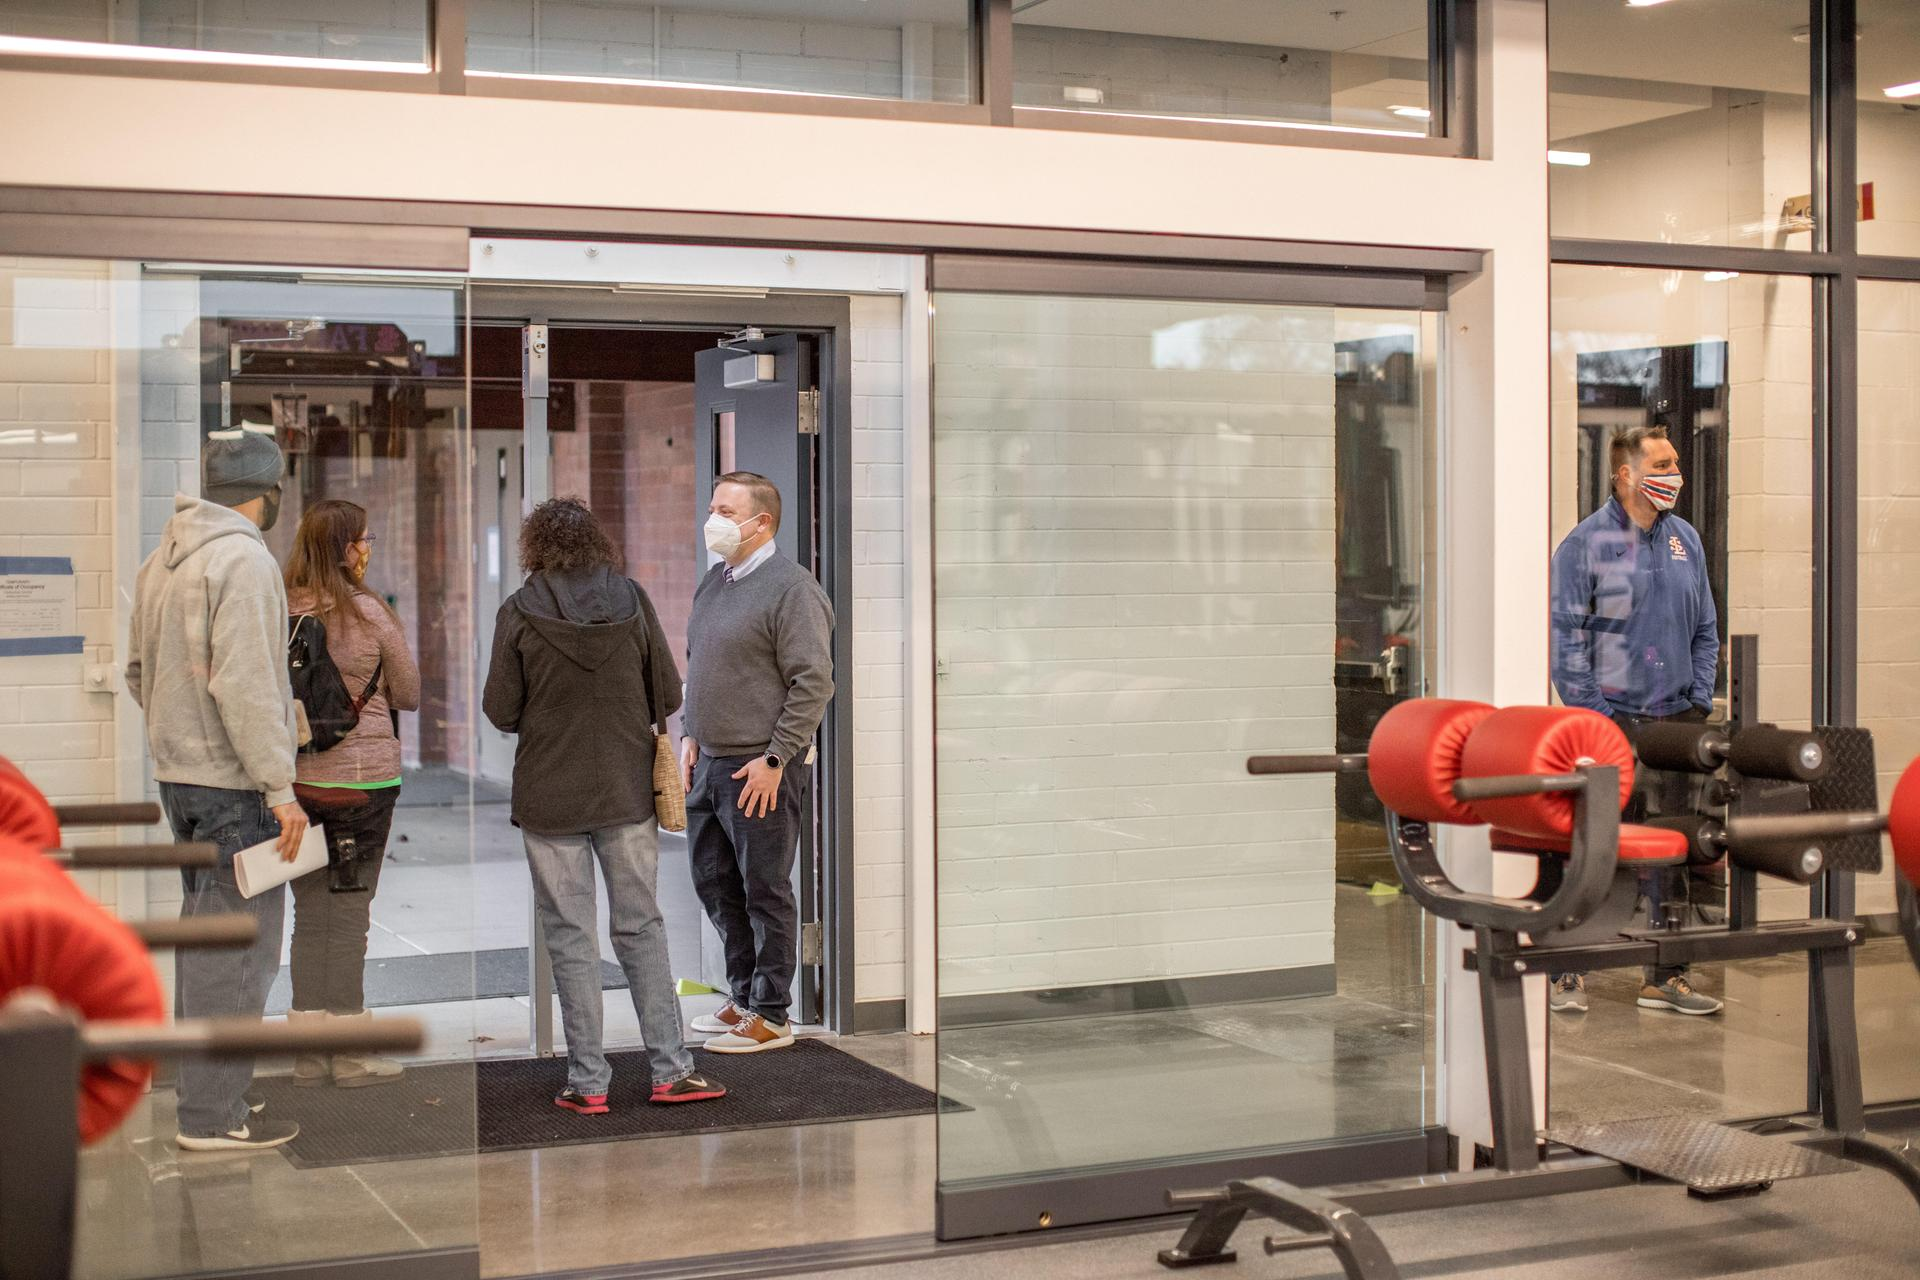 people touring the inside of the fitness center